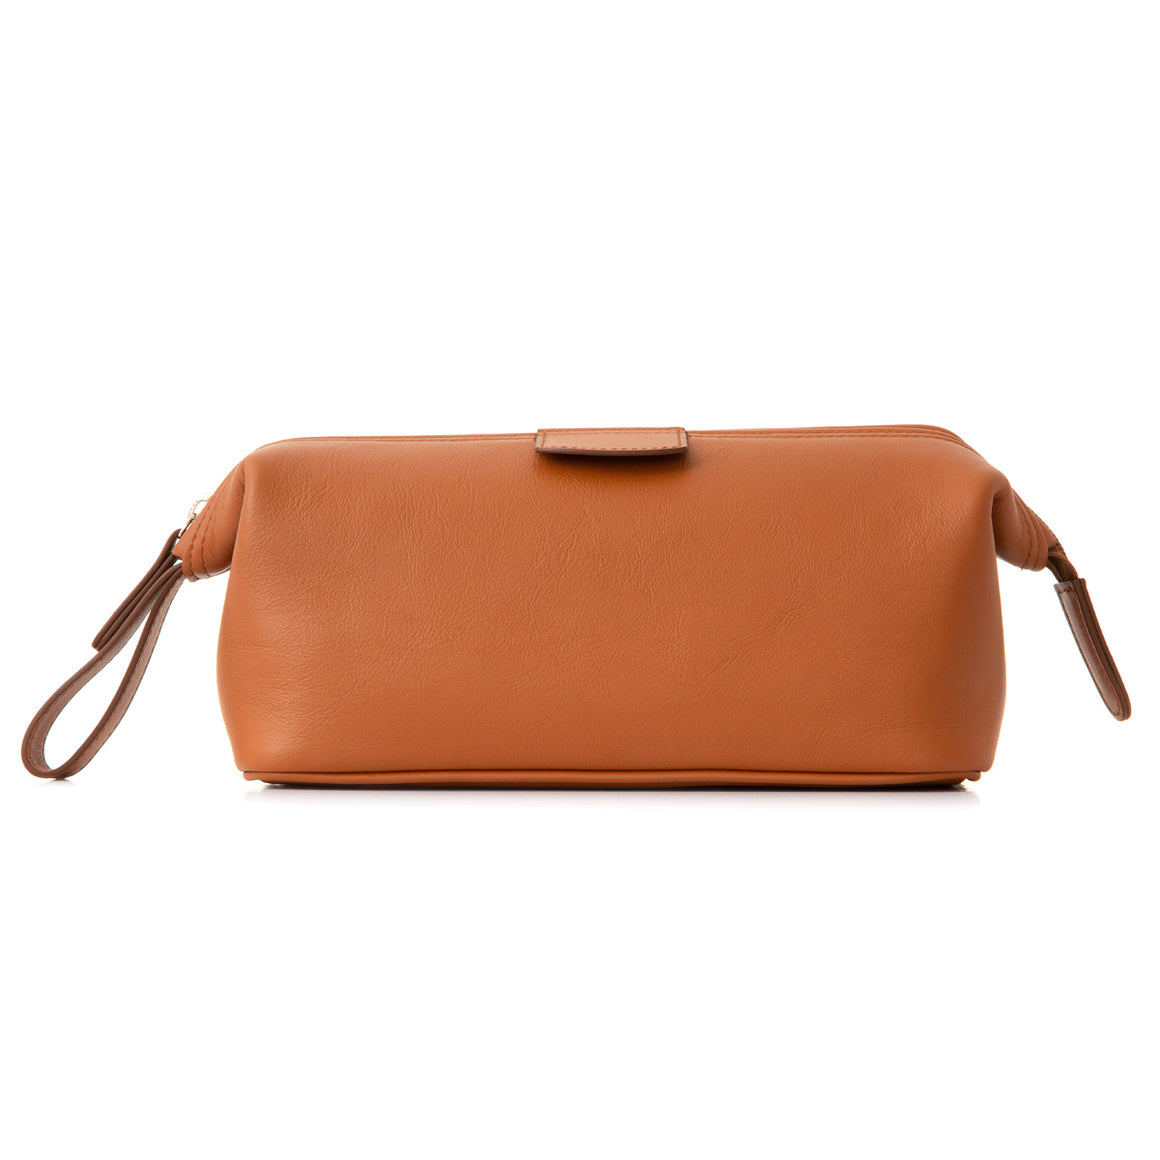 Medium Light Tan Leather Wash Bag